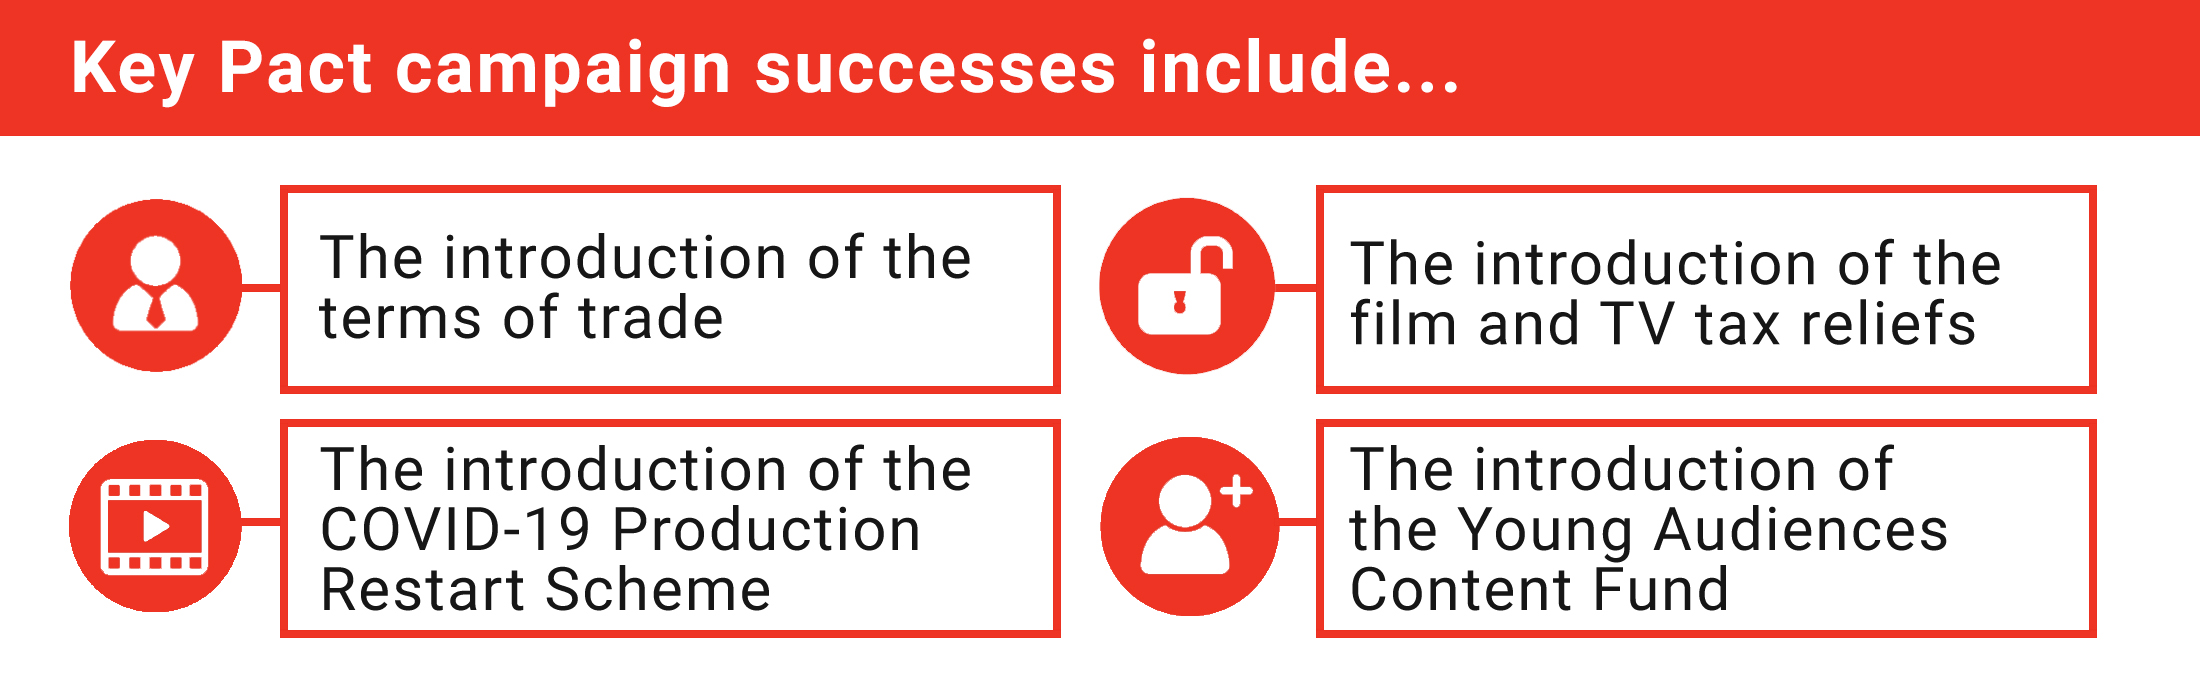 Key Pact campaign successes include... introduction of terms of trade, the Production Restart Scheme, film and TV tax reliefs, Young Audiences Content Fund